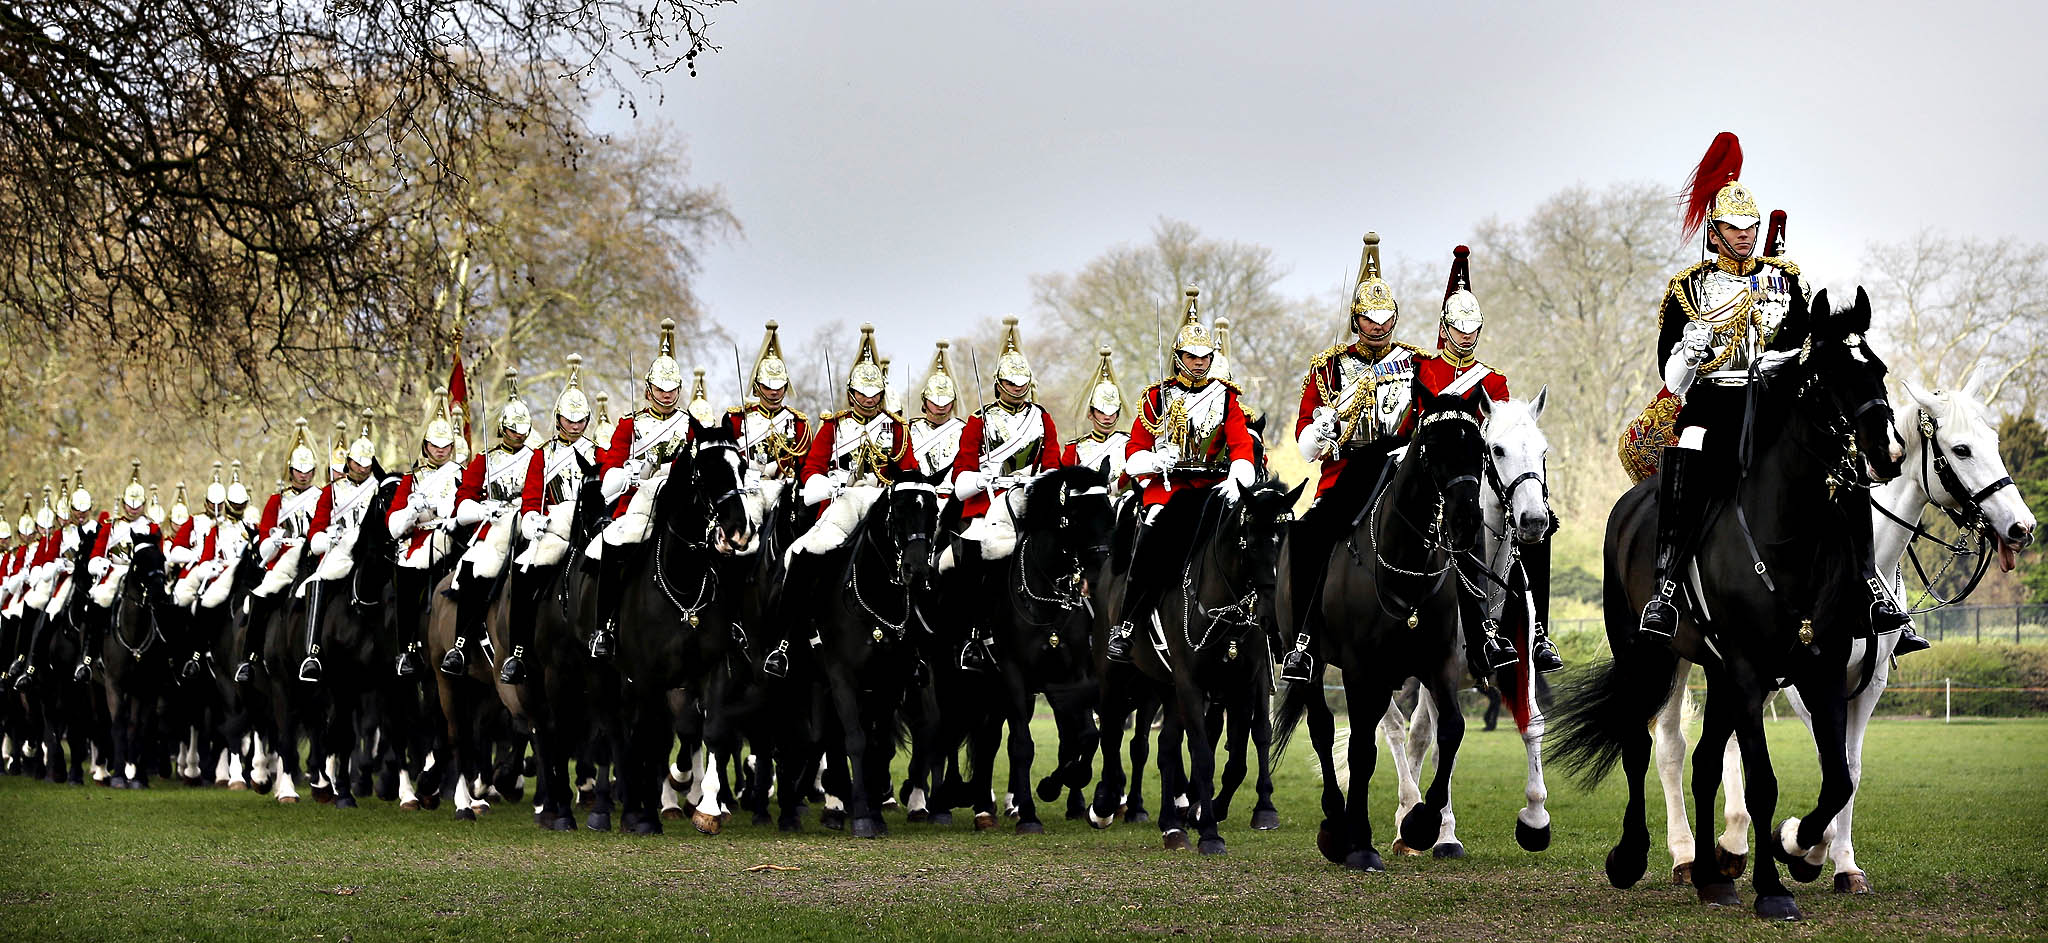 The Household Cavalry Mounted Regiment parades in Hyde Park in London, Thursday, March 20, 2014. The regiment was undergoing their annual inspection to validate their ability to conduct state ceremonial duties for the year. 160 horses were paraded accompanied by the mounted Band of the Life Guards and Band of the Blues and Royals.